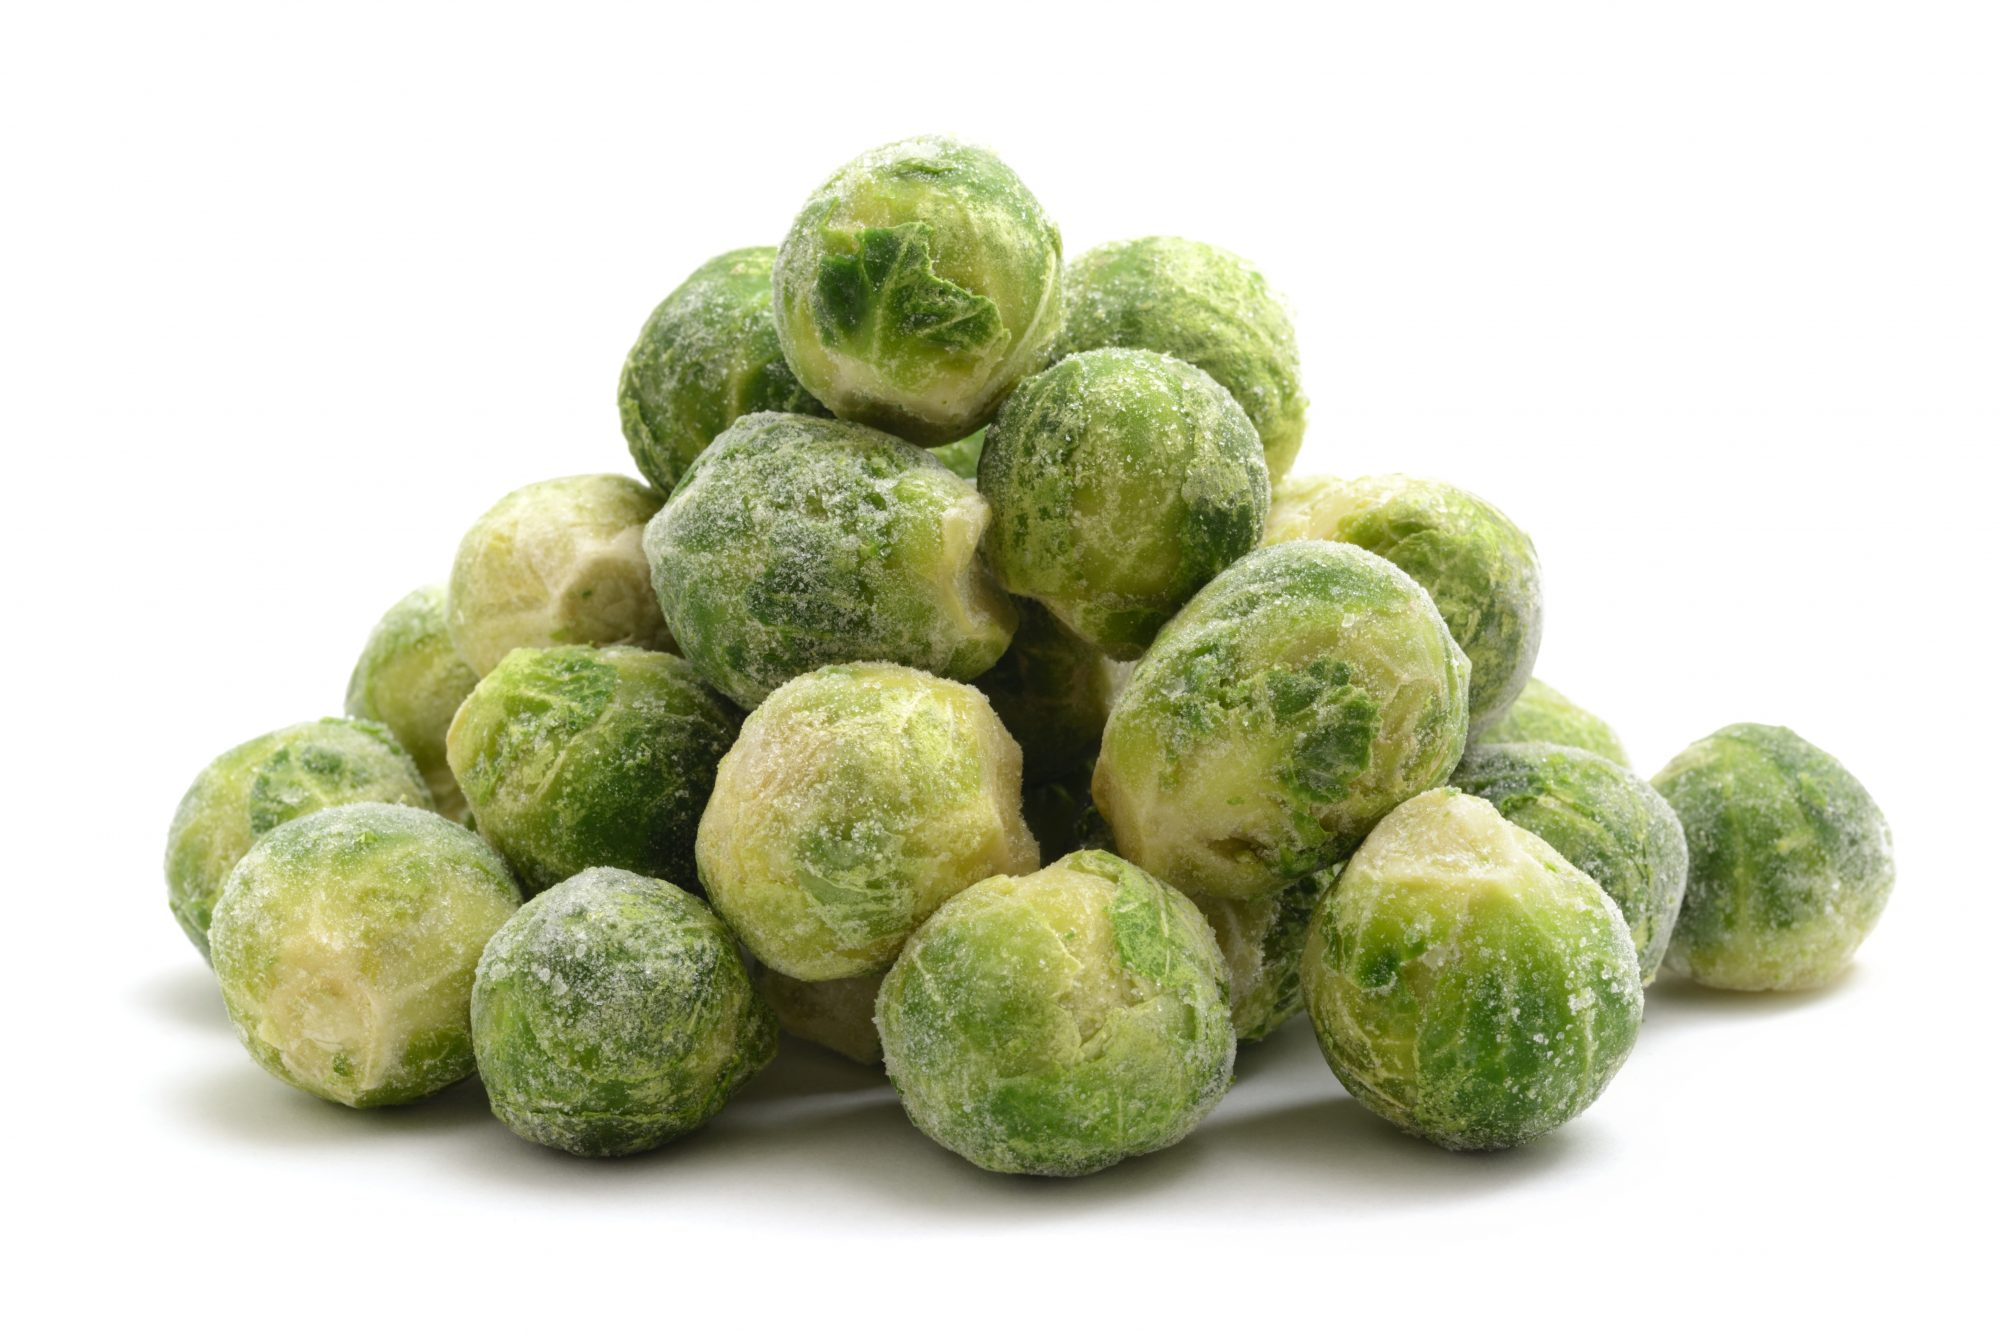 How to make frozen brussel sprouts in a pan